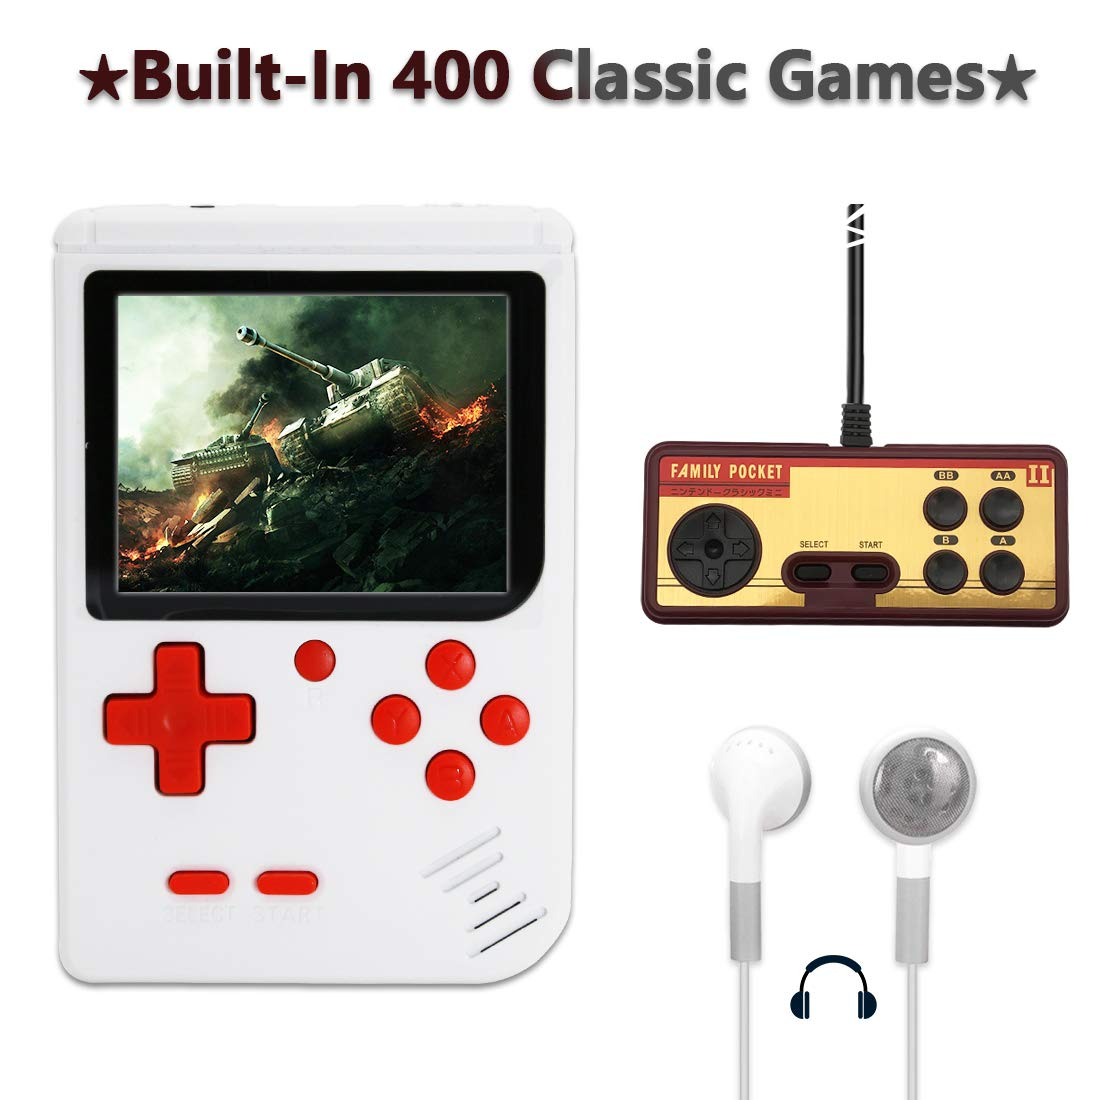 AKTOUGST Handheld Game Console, Retro Game Console 400 Classic Game FC System Video 3 Inch with Headphone Portable Mini Extra Joystick Controller Support TV 2 Player,Gift for Children Adult, (White)